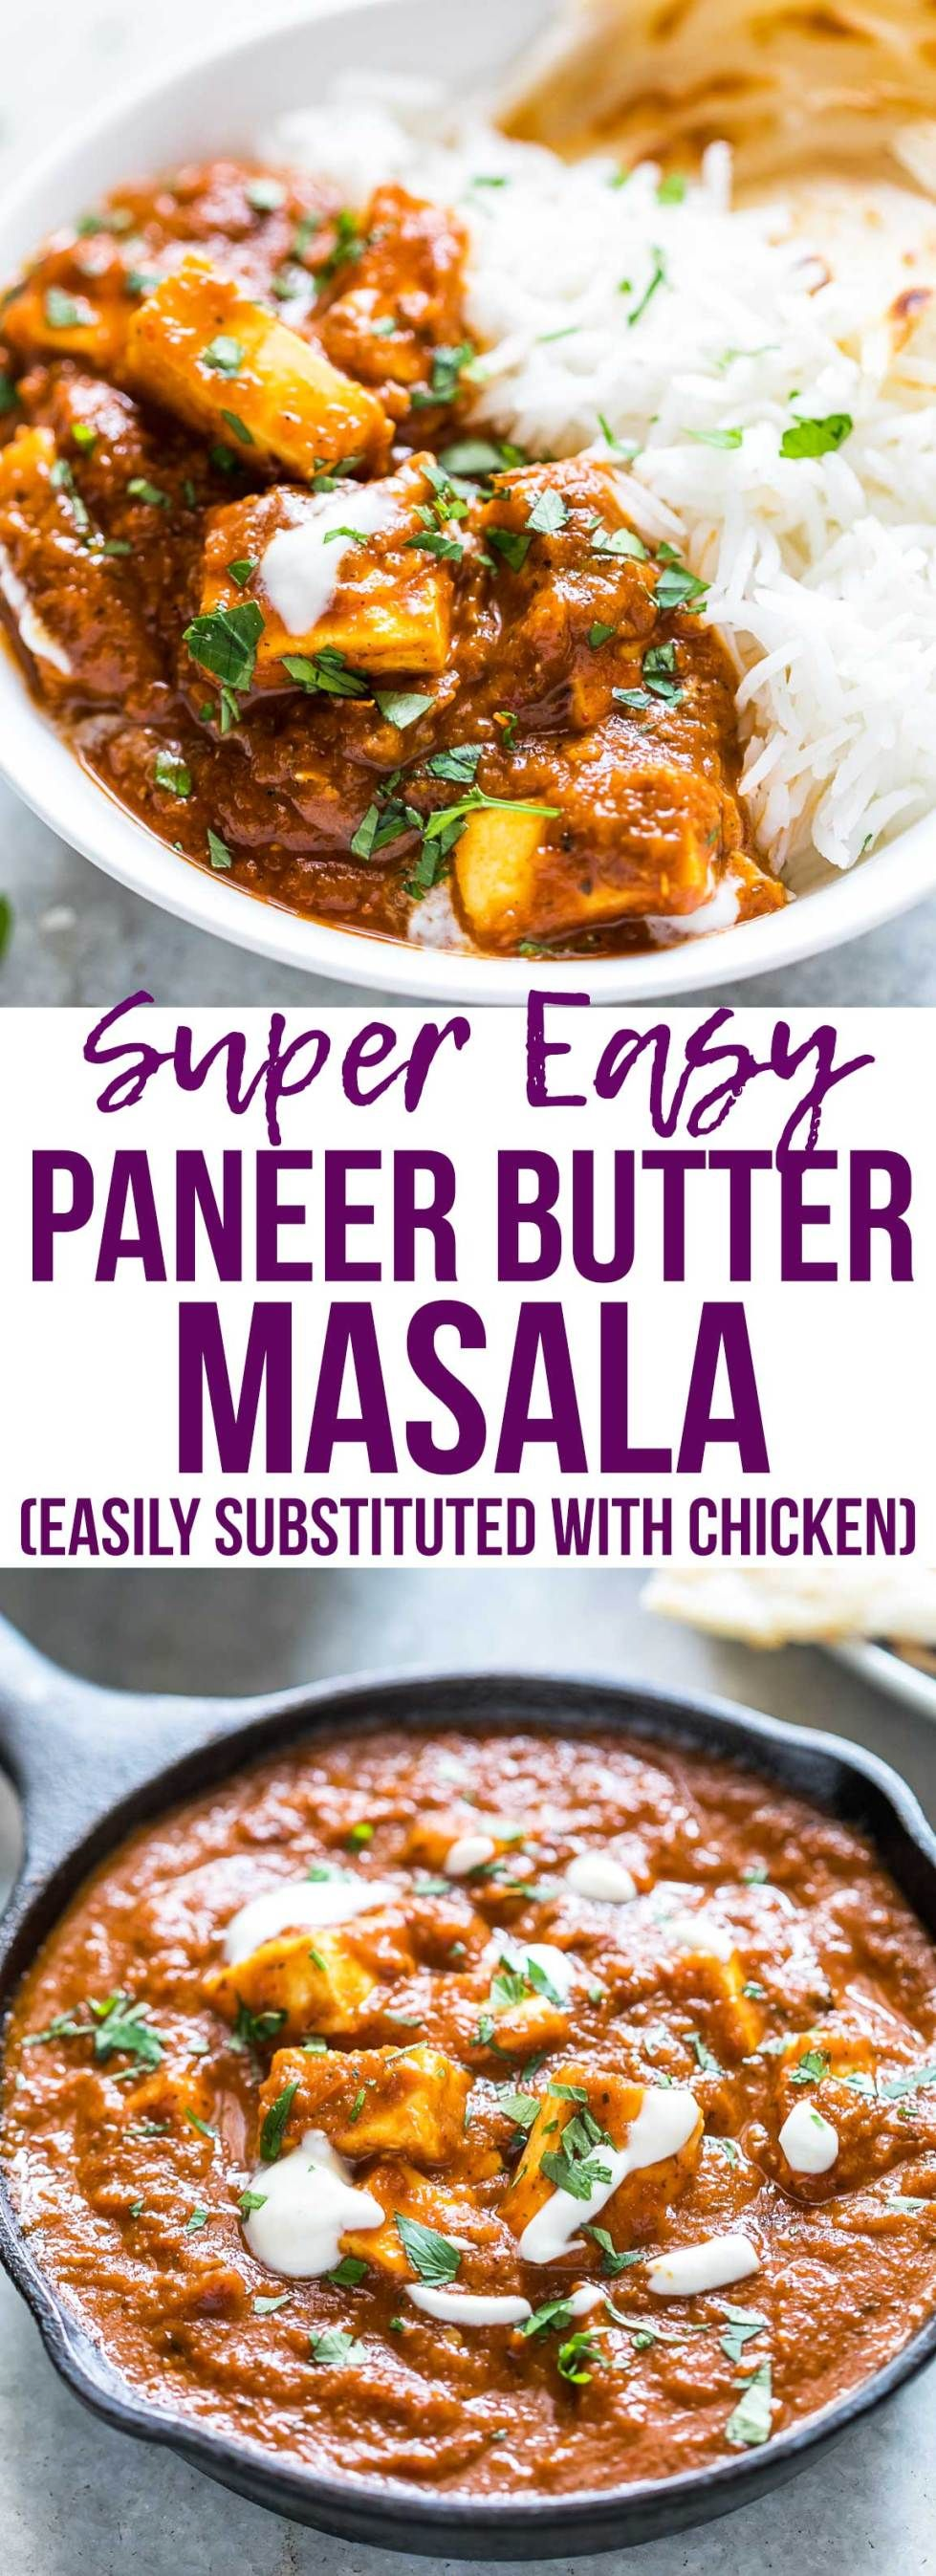 Easy recipe for indian restaurant style paneer butter masala paneer easy recipe for indian restaurant style paneer butter masala paneer makhani curry made with homemade cottage cheese this is easy indian food that can be forumfinder Gallery